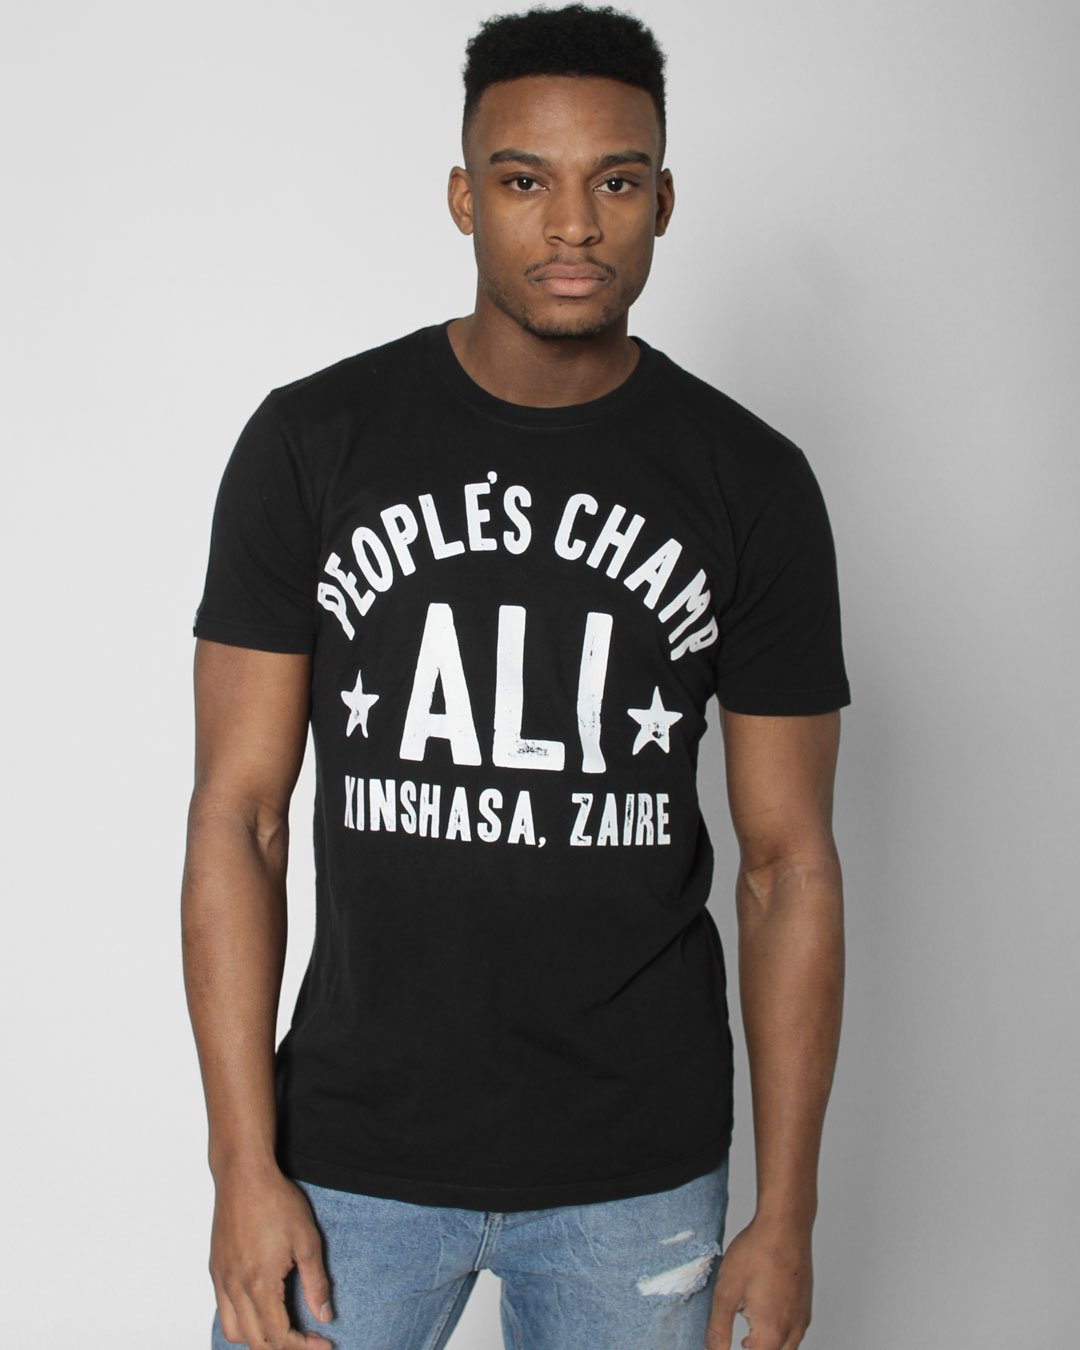 Ali Rumble Kinshasa Zaire Tee - Roots of Inc dba Roots of Fight